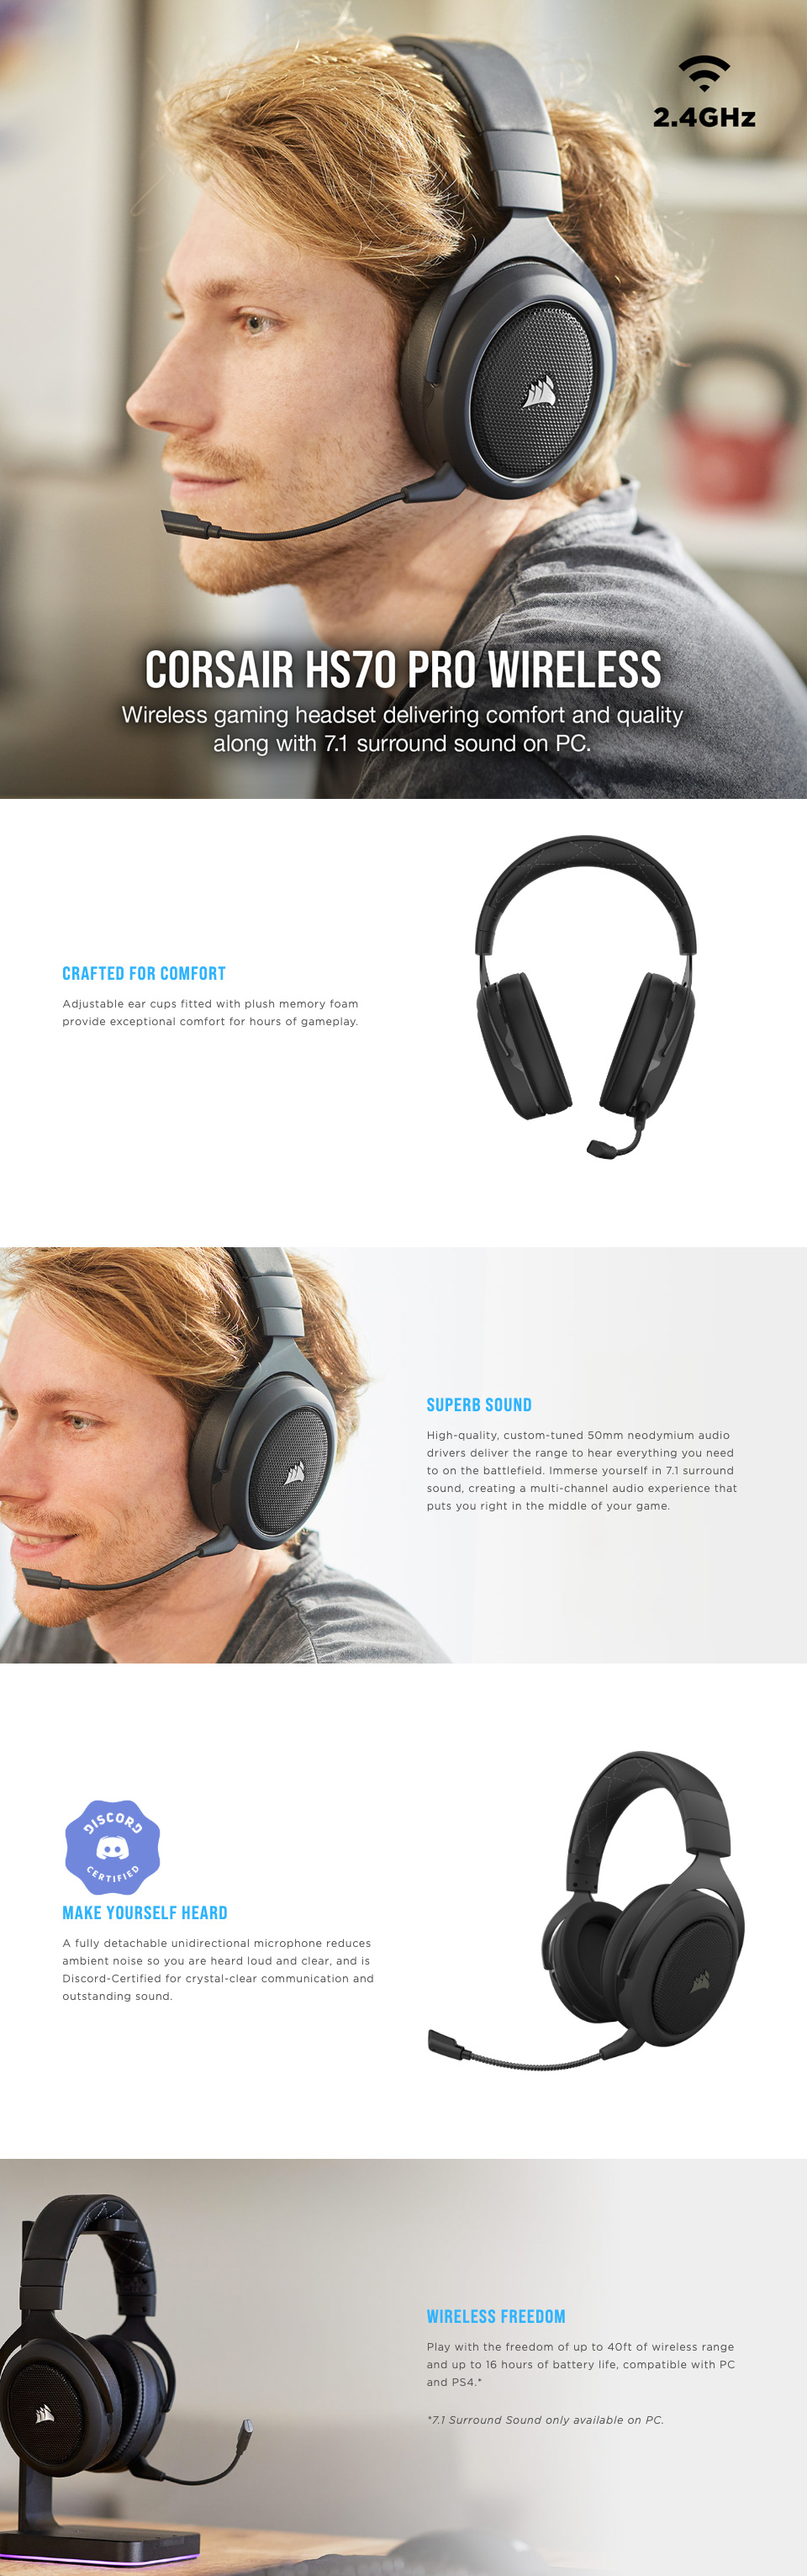 Corsair HS70 PRO Wireless Gaming Headset Carbon features